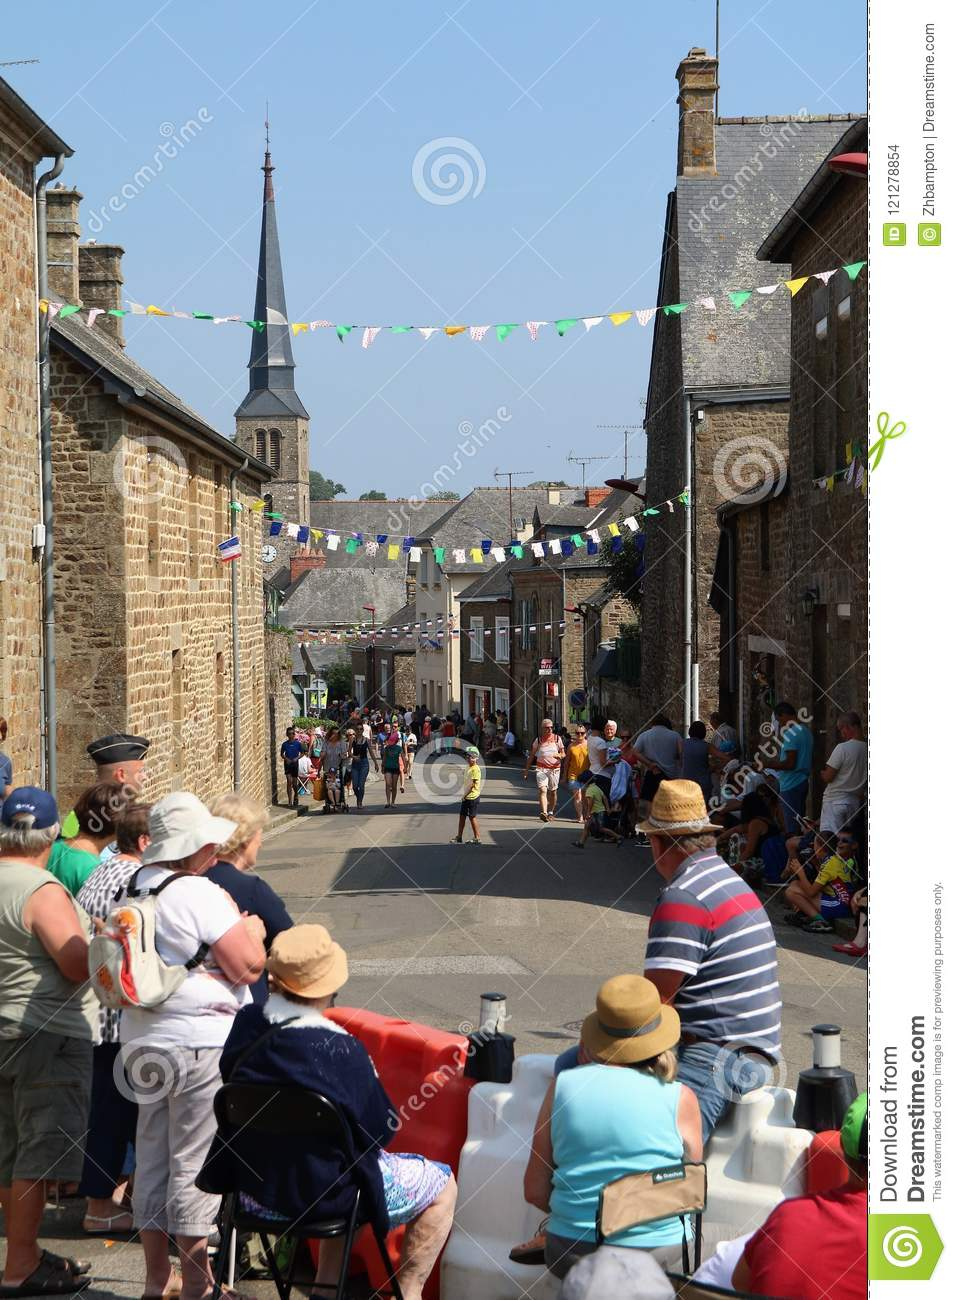 Tour de France fever in Larchamp as everyone awaits the cyclists